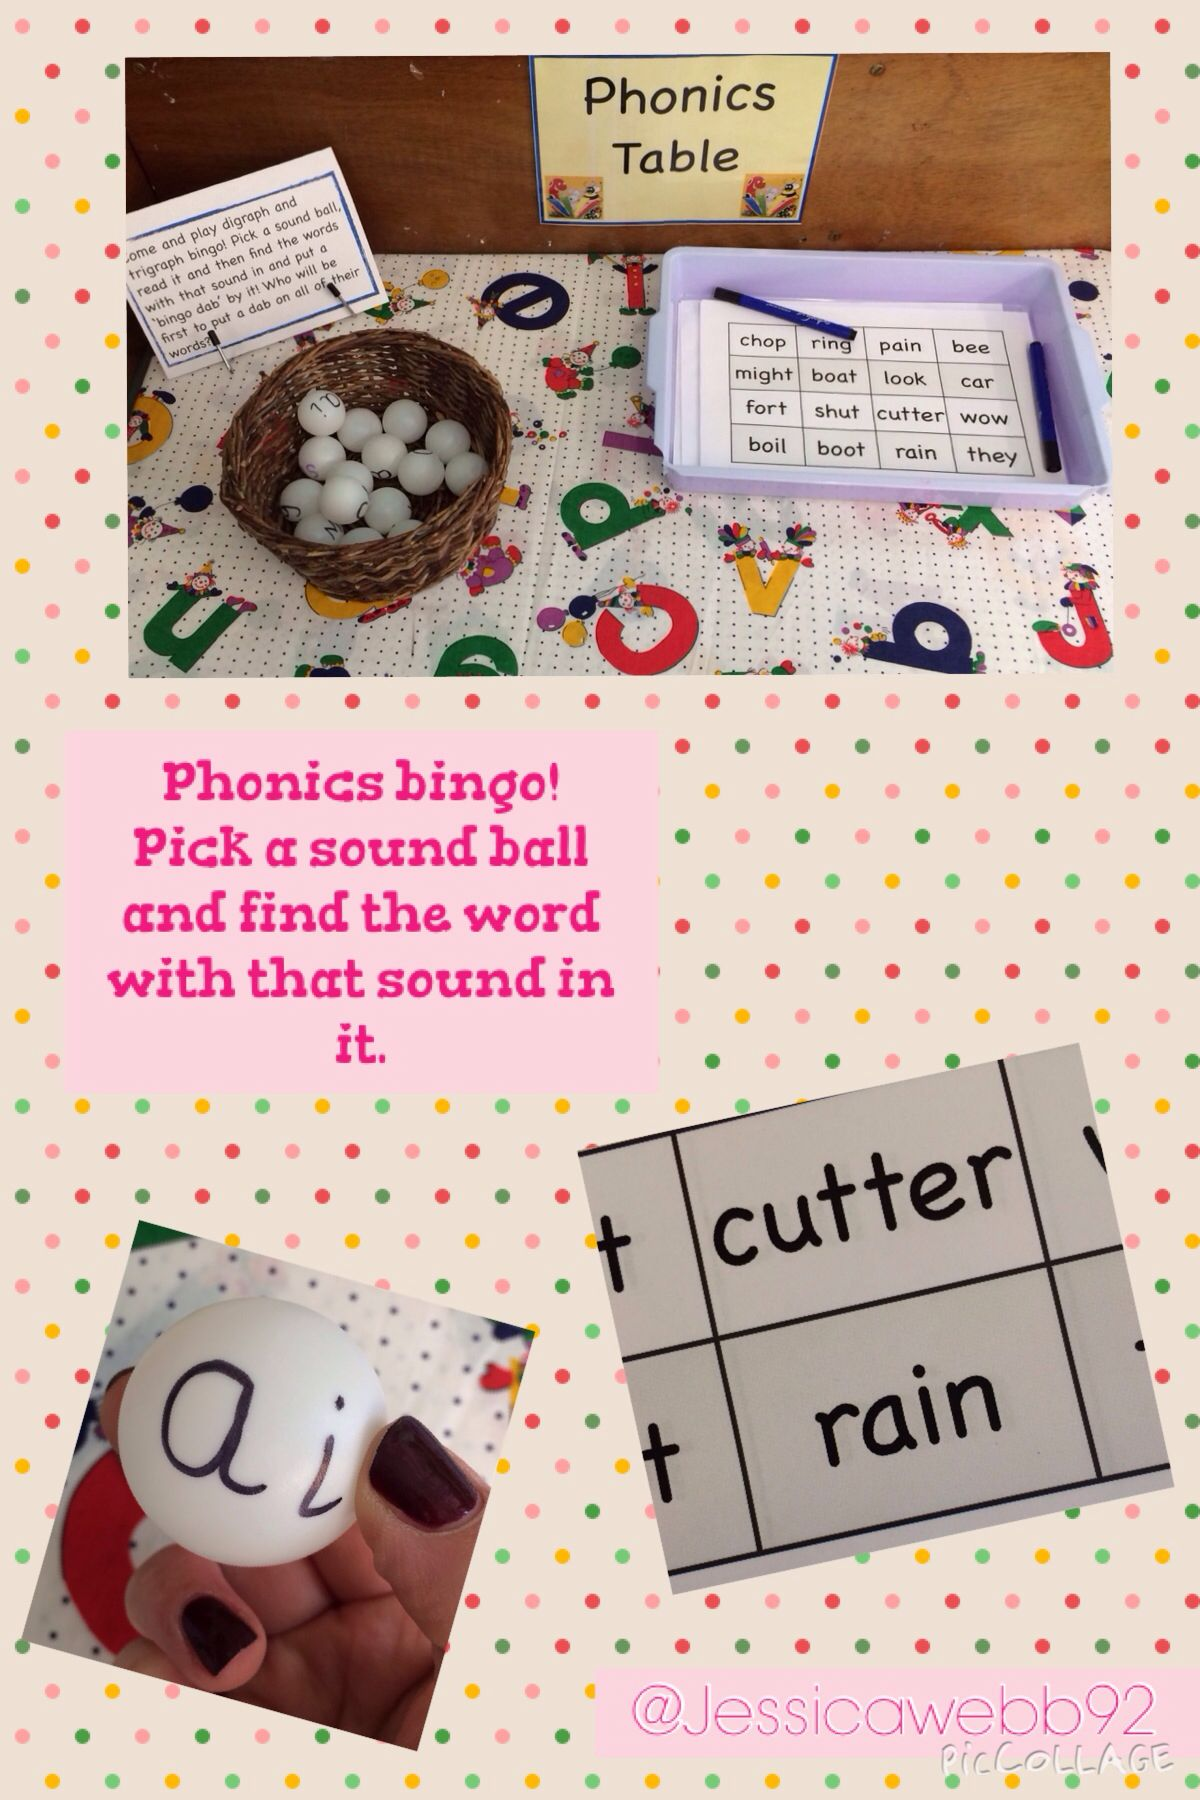 Phonics bingo! Pick a ball, read the sound and find the word